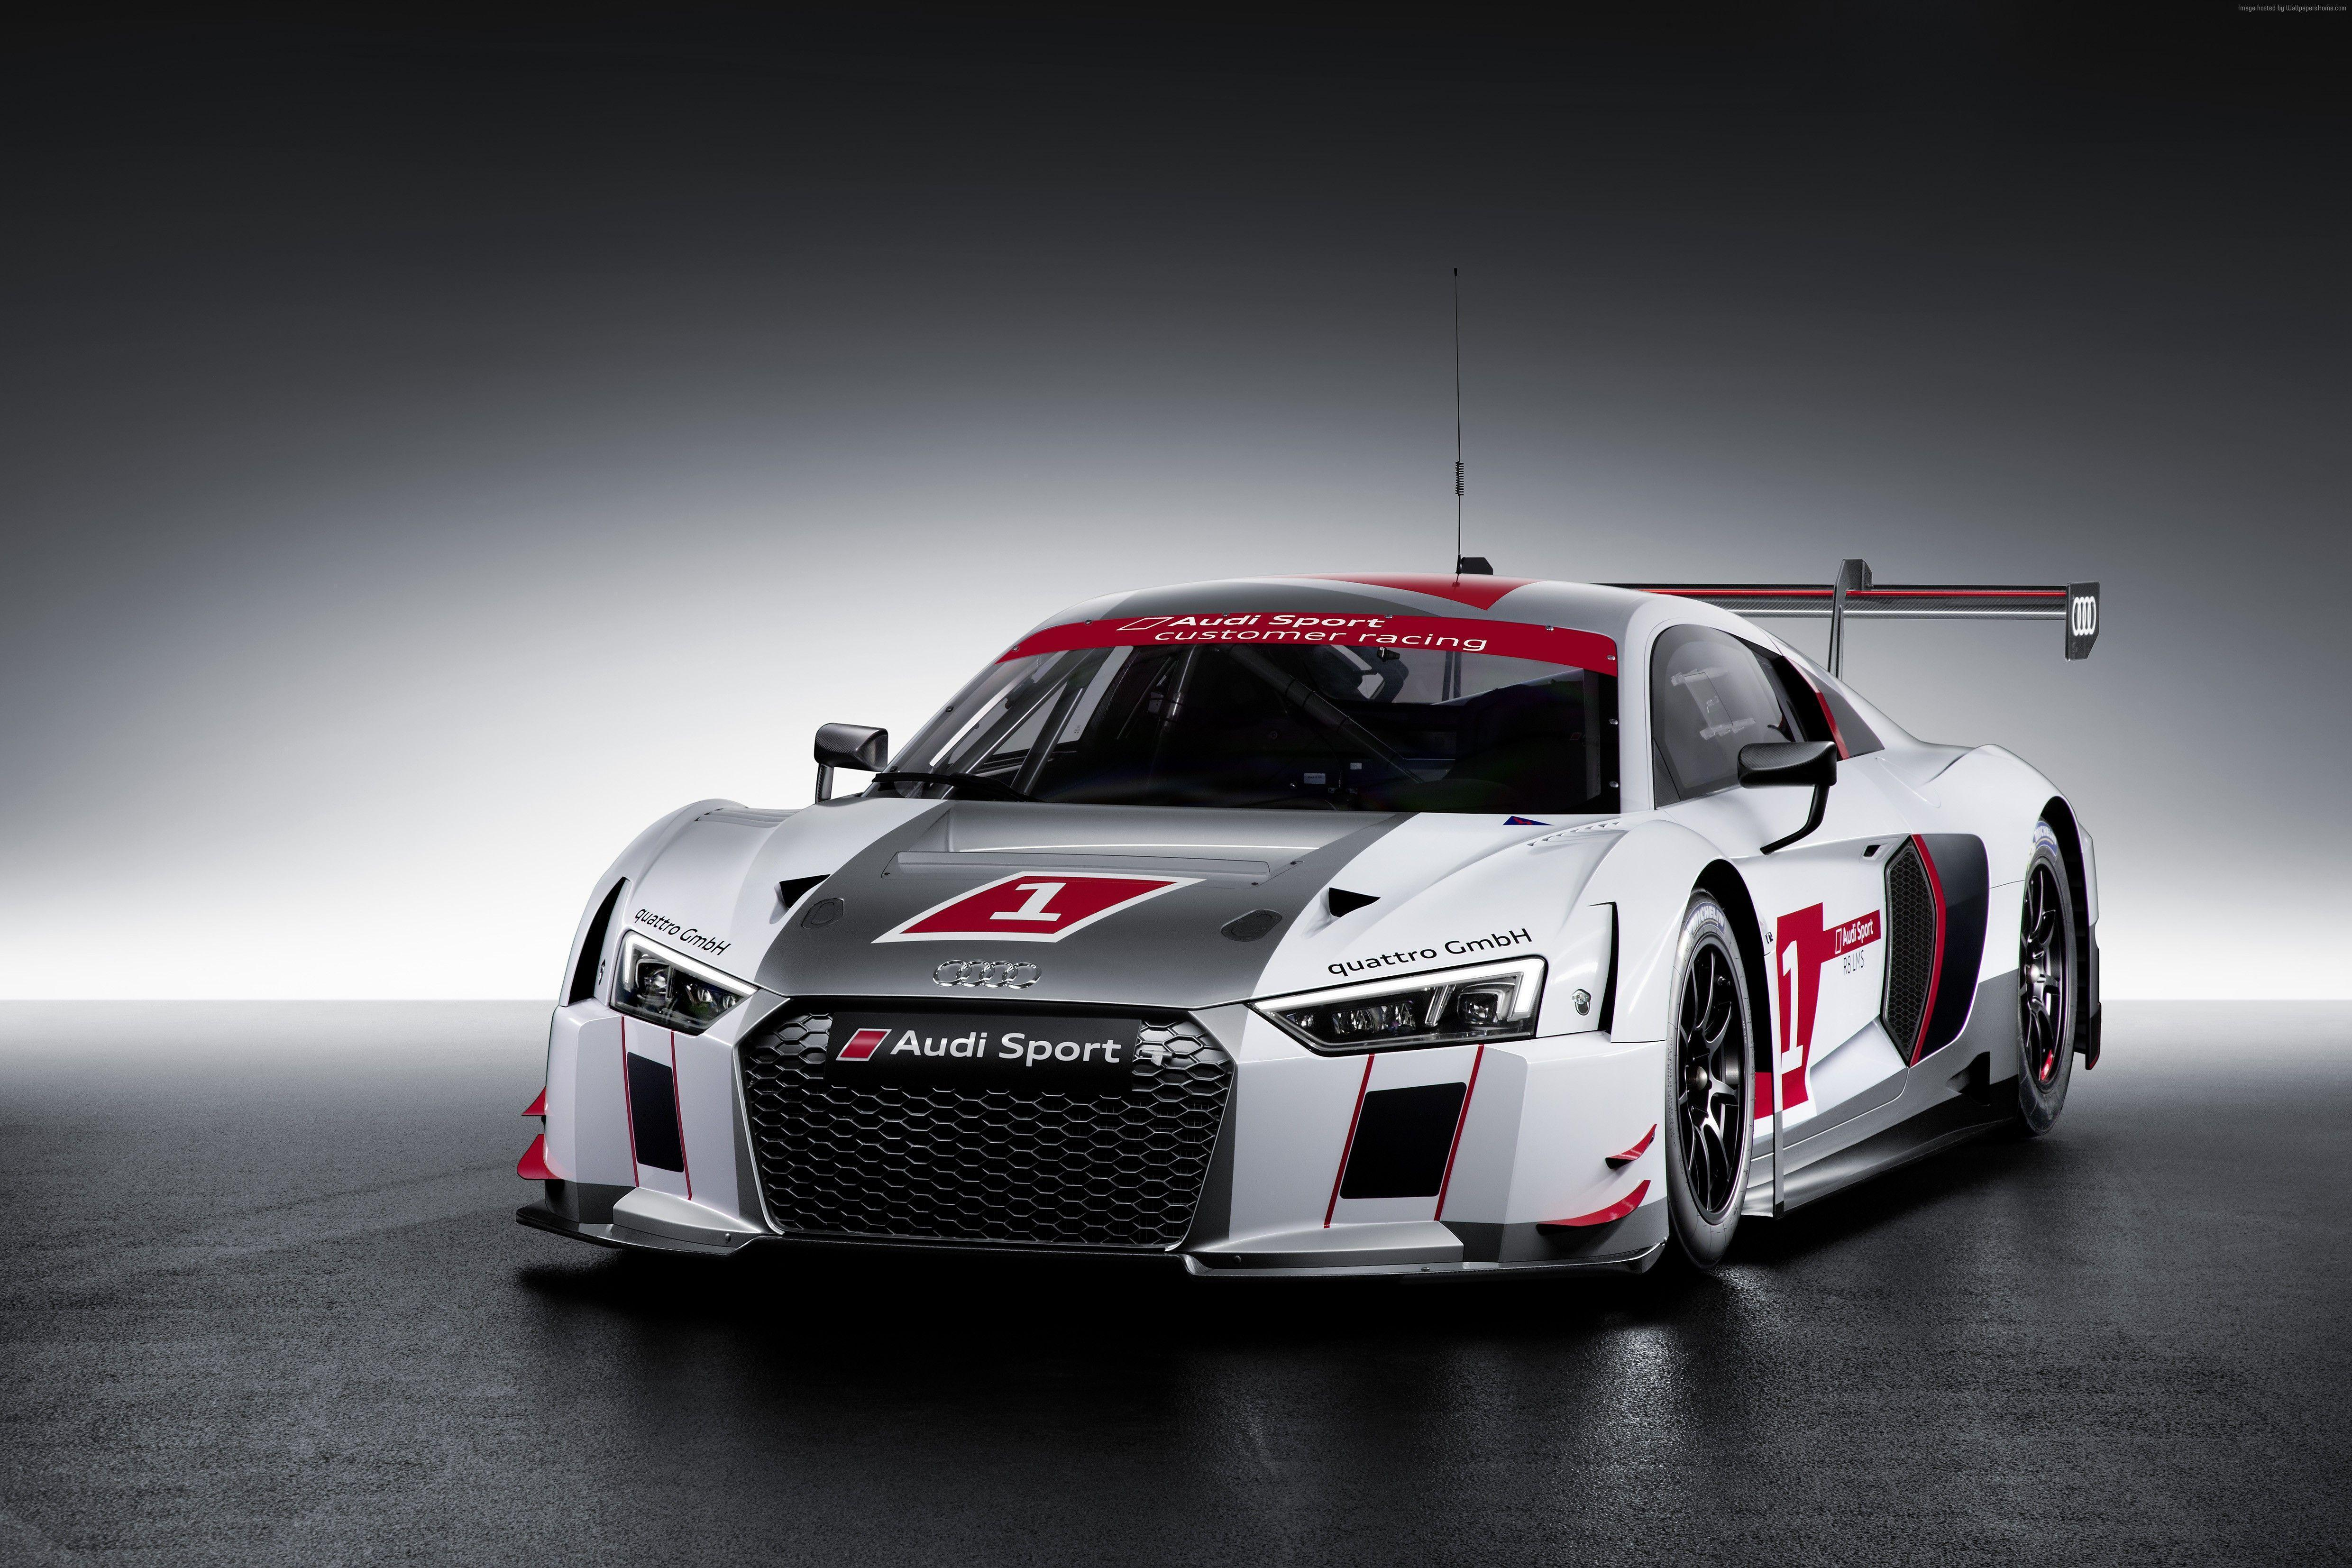 Wallpapers Audi R8 LMS, coupe, supercar, gray., Cars & Bikes